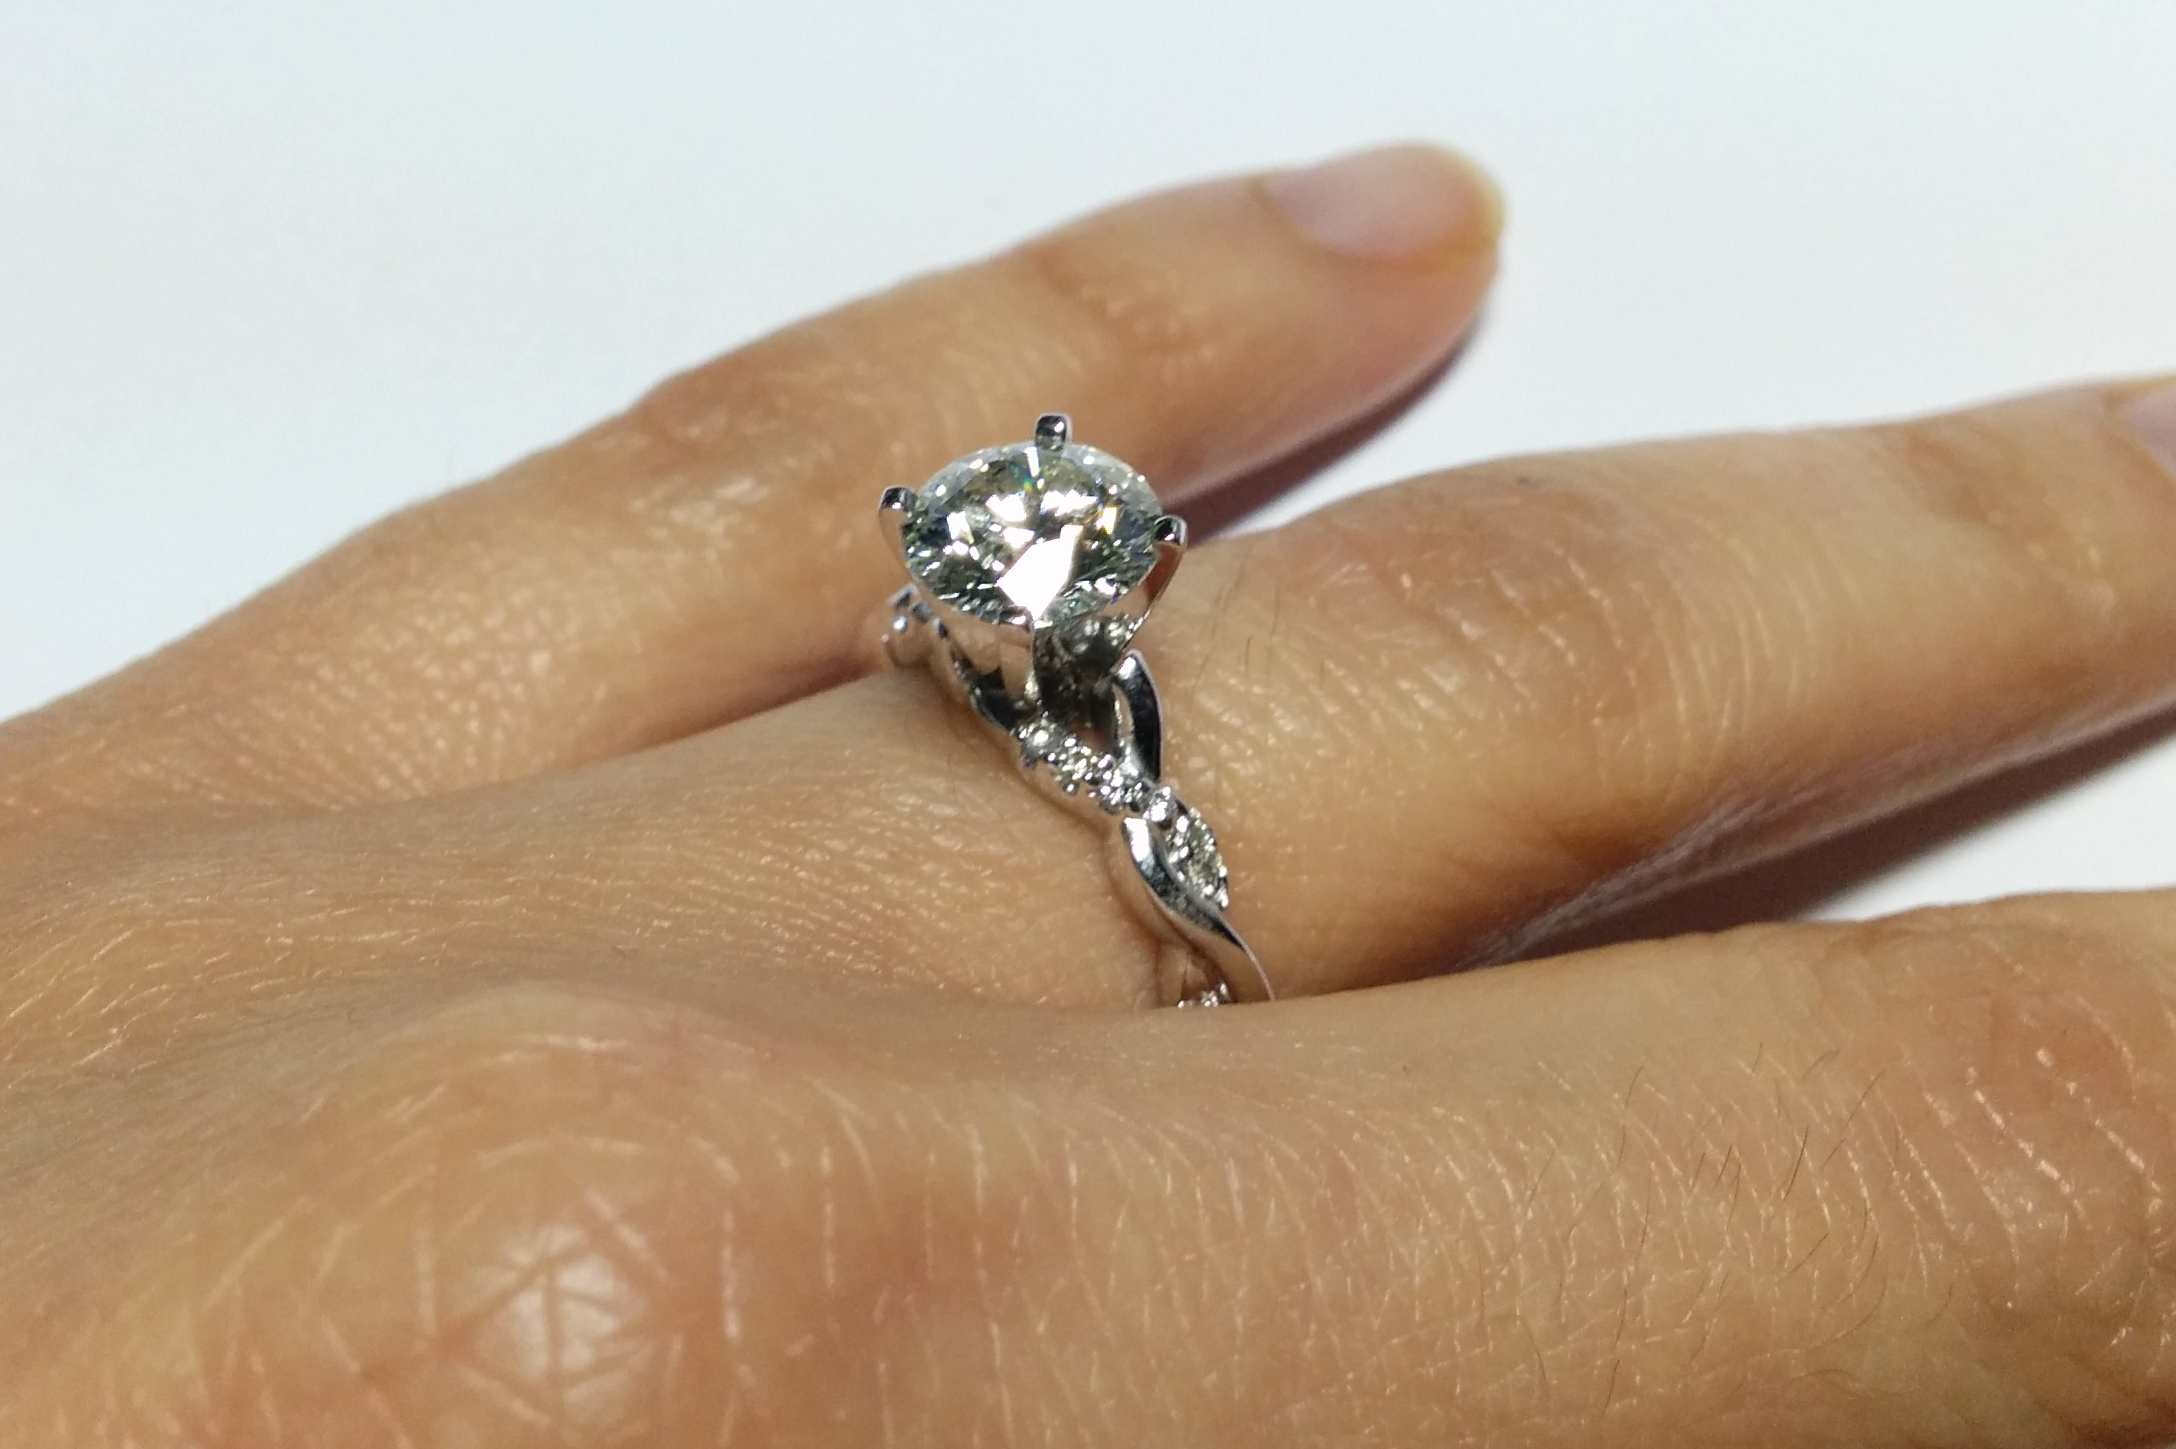 featured engagement rings from mdc diamonds nyc. Black Bedroom Furniture Sets. Home Design Ideas